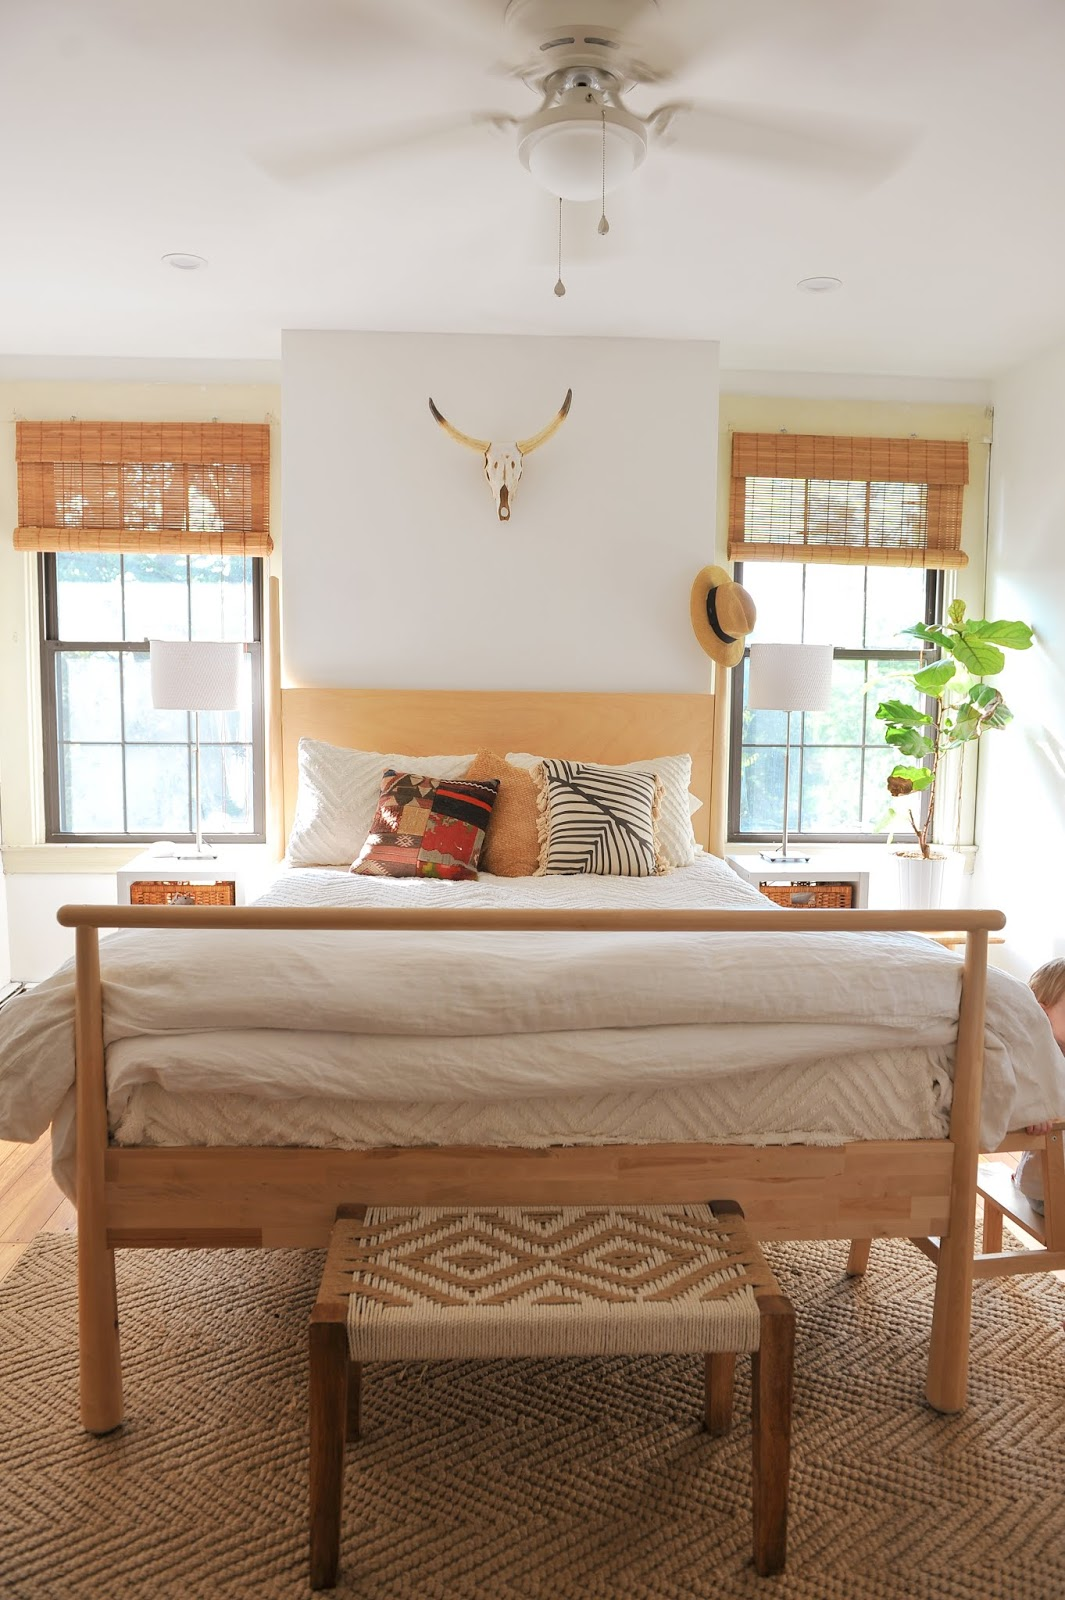 Ikea Bed Hack.A New Bloom Diy And Craft Projects Home Interiors Style